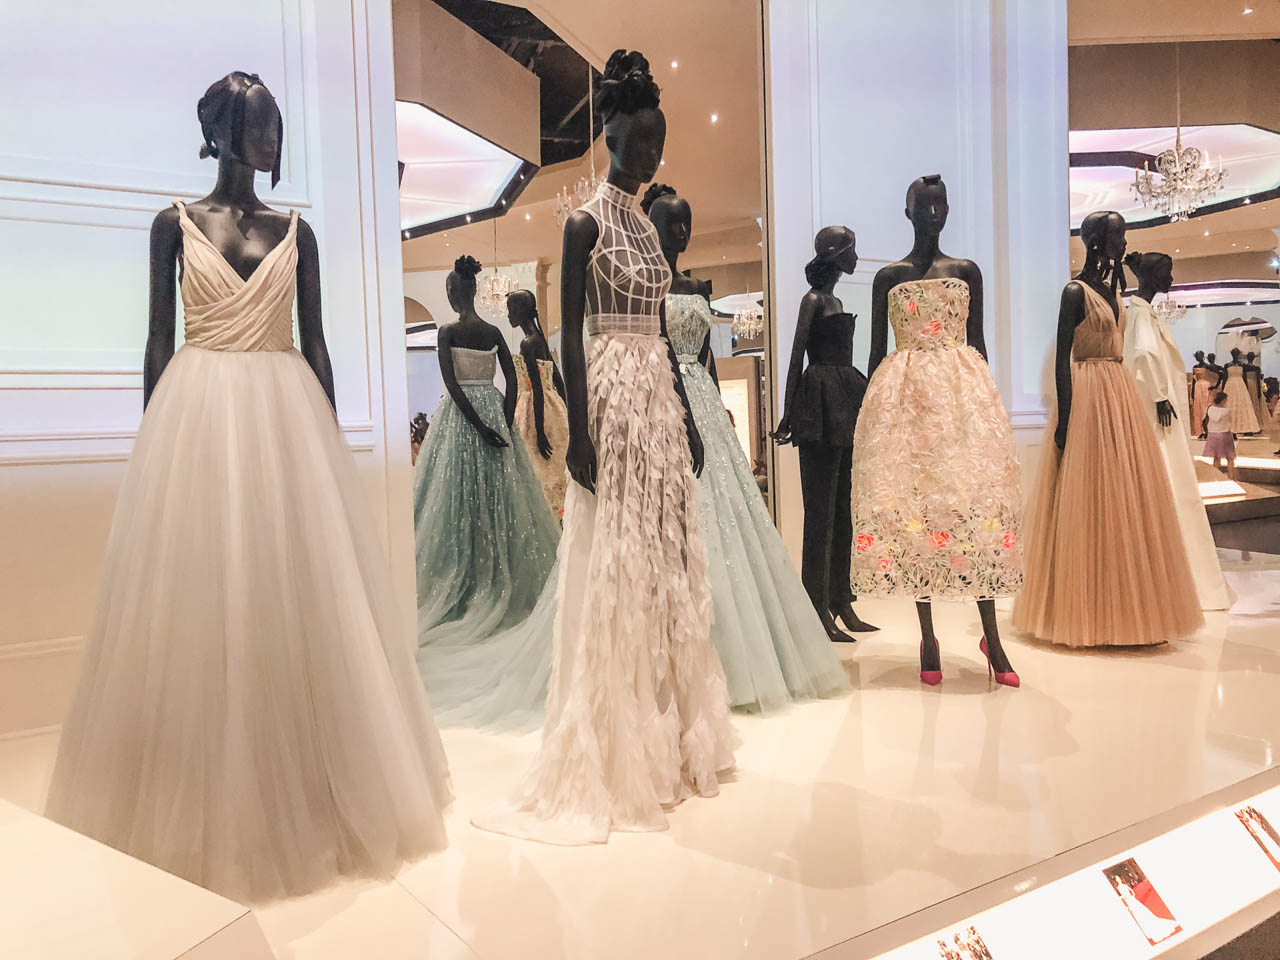 Dior haute couture gowns worn by celebrities displayed at the Victoria and Albert Museum in London